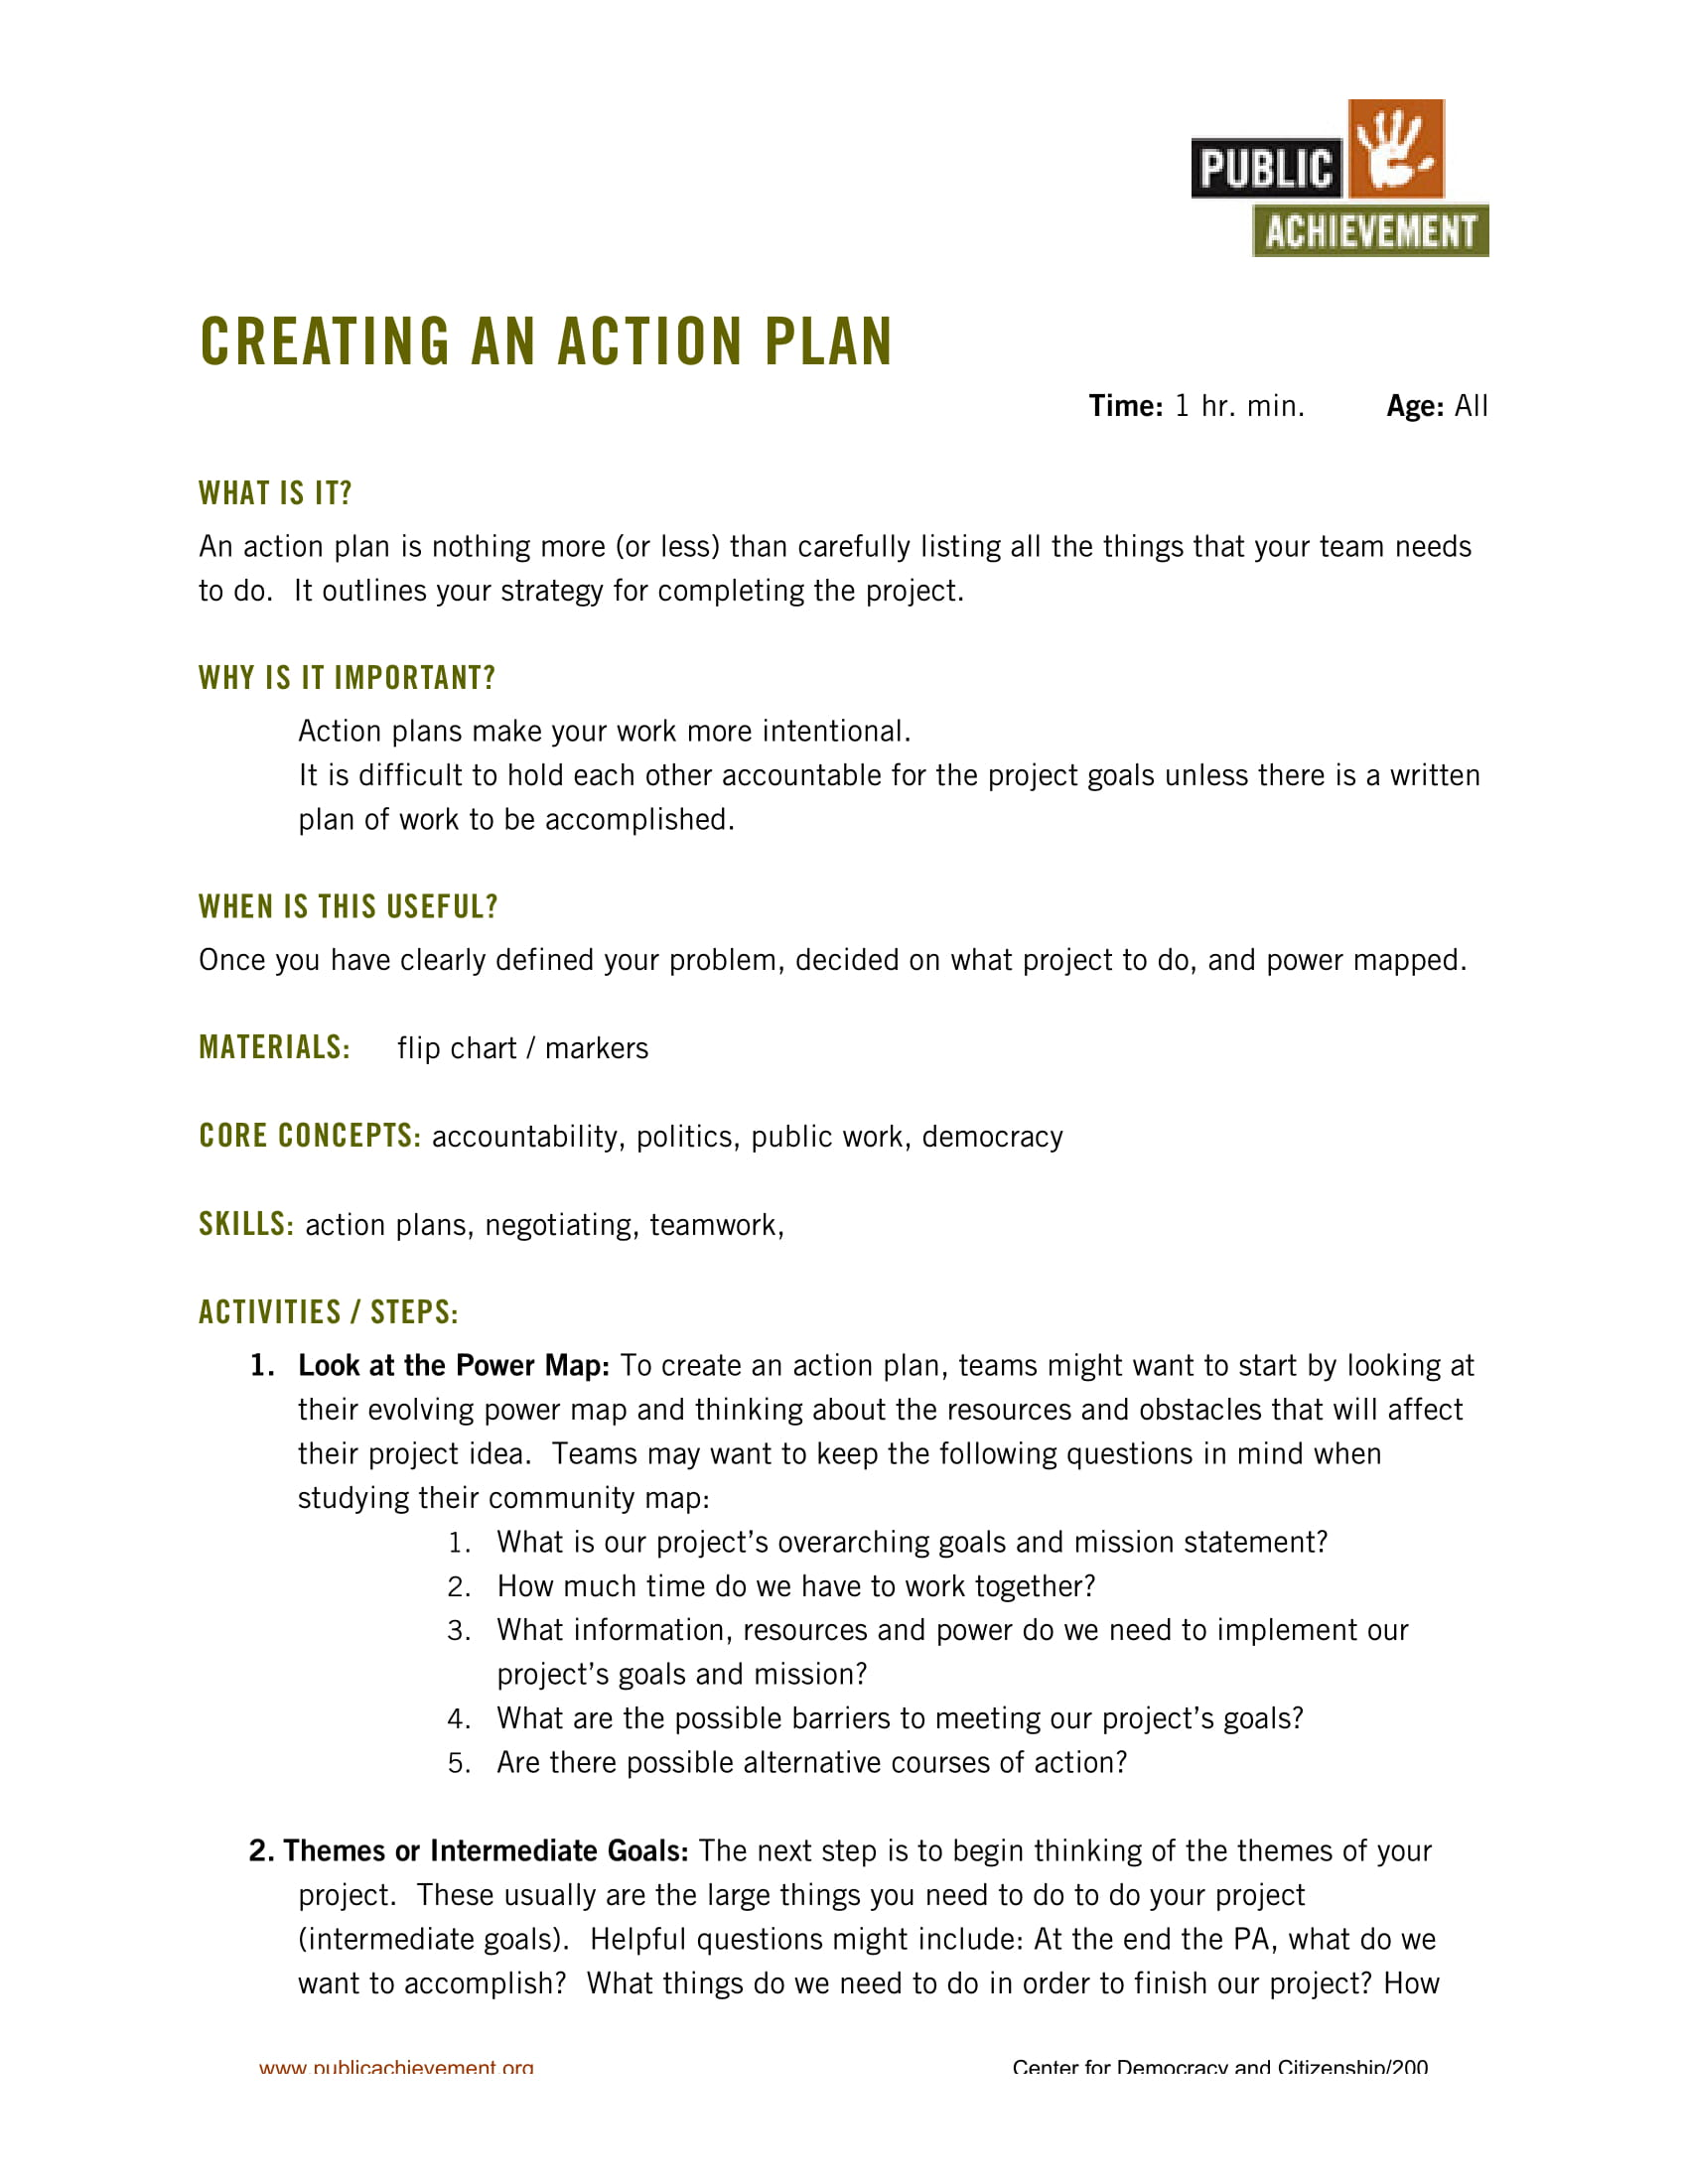 action plan for a project example 1